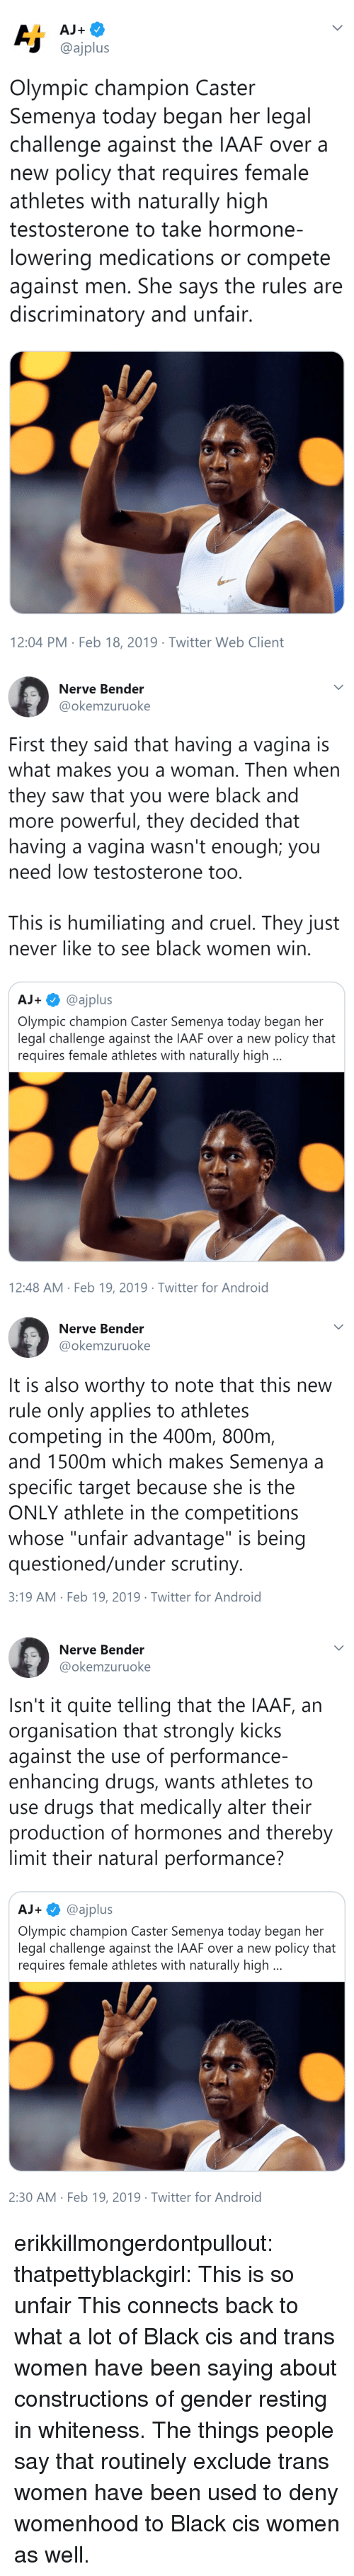 "deny: @ajplus  Olympic champion Caster  Semenya today began her legal  challenge against the IAAF over a  new policy that requires female  athletes with naturally high  testosterone to take hormone-  lowering medications or compete  against men. She says the rules are  discriminatory and unfair  12:04 PM Feb 18, 2019 Twitter Web Client   Nerve Bender  @okemzuruoke  First they said that having a vagina is  what makes you a woman. Then when  they saw that you were black and  more powerful, they decided that  having a vagina wasn't enough; you  need low testosterone too  This is humiliating and cruel. They just  never like to see black women win  AJ+@ajplus  Olympic champion Caster Semenya today began her  legal challenge against the IAAF over a new policy that  requires female athletes with naturally high  12:48 AM Feb 19, 2019 Twitter for Android   Nerve Bender  @okemzuruoke  It is also worthy to note that this new  rule only applies to athletes  competing in the 400m, 800nm  and 1500m which makes Semenya a  specific target because she is the  ONLY athlete in the competitions  whose ""unfair advantage"" is being  questioned/under scrutiny  3:19 AM Feb 19, 2019 Twitter for Android   Nerve Bender  @okemzuruoke  Isn't it quite telling that the IAAF, an  organisation that strongly kicks  against the use of performance-  enhancing drugs, wants athletes to  use drugs that medically alter their  production of hormones and thereby  limit their natural performance?  AJ+@ajplus  Olympic champion Caster Semenya today began her  legal challenge against the IAAF over a new policy that  requires female athletes with naturally high  2:30 AM Feb 19, 2019 Twitter for Android erikkillmongerdontpullout: thatpettyblackgirl:  This is so unfair    This connects back to what a lot of Black cis and trans women have been saying about constructions of gender resting in whiteness. The things people say that routinely exclude trans women have been used to deny womenhood to Black cis women as well."